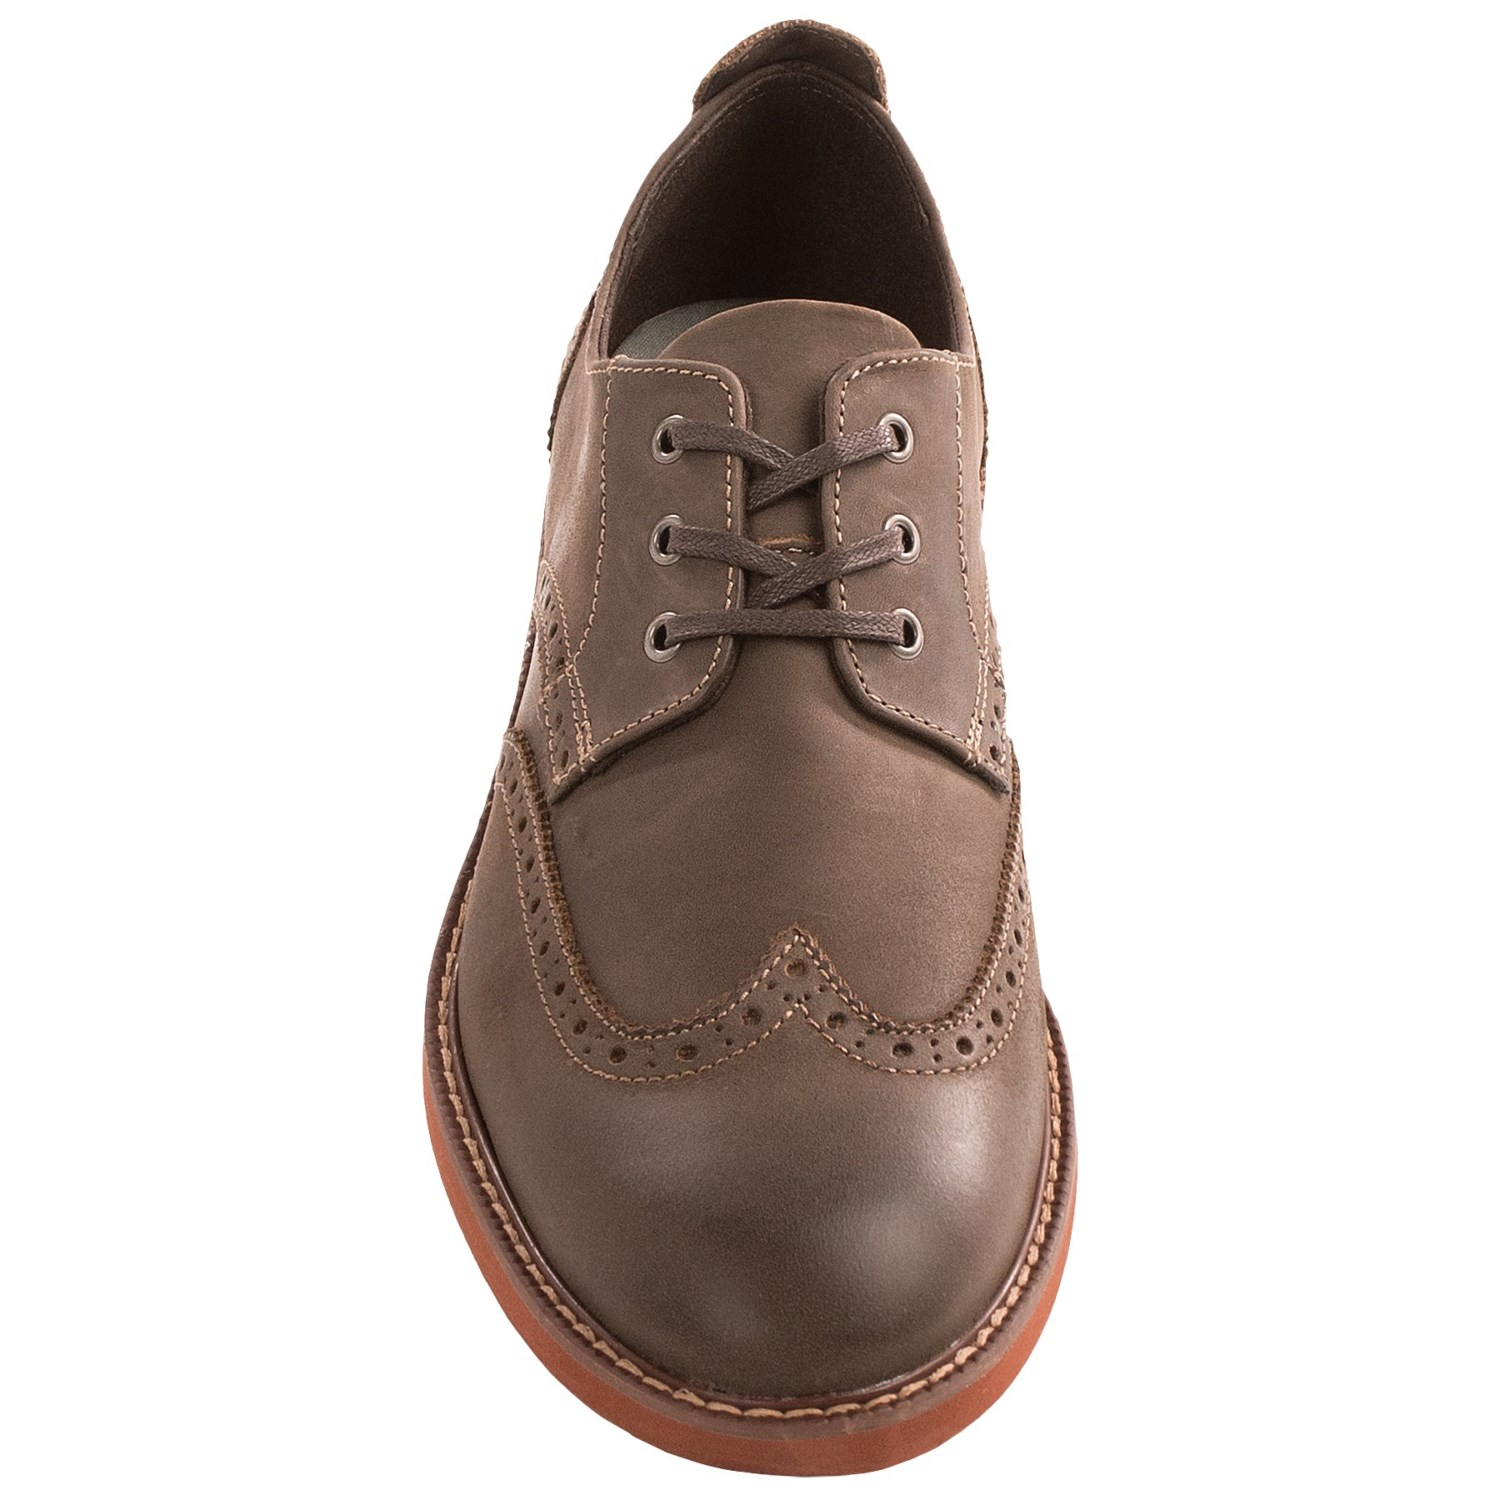 Mens Oxfords Dressy shoes can do wonders for a man's appearance, so step your game up with a nice pair of men's oxfords. hitmixeoo.gq has huge collections of oxford shoes for men in all sizes and colors, with many available in the ever popular black, brown and white hues.